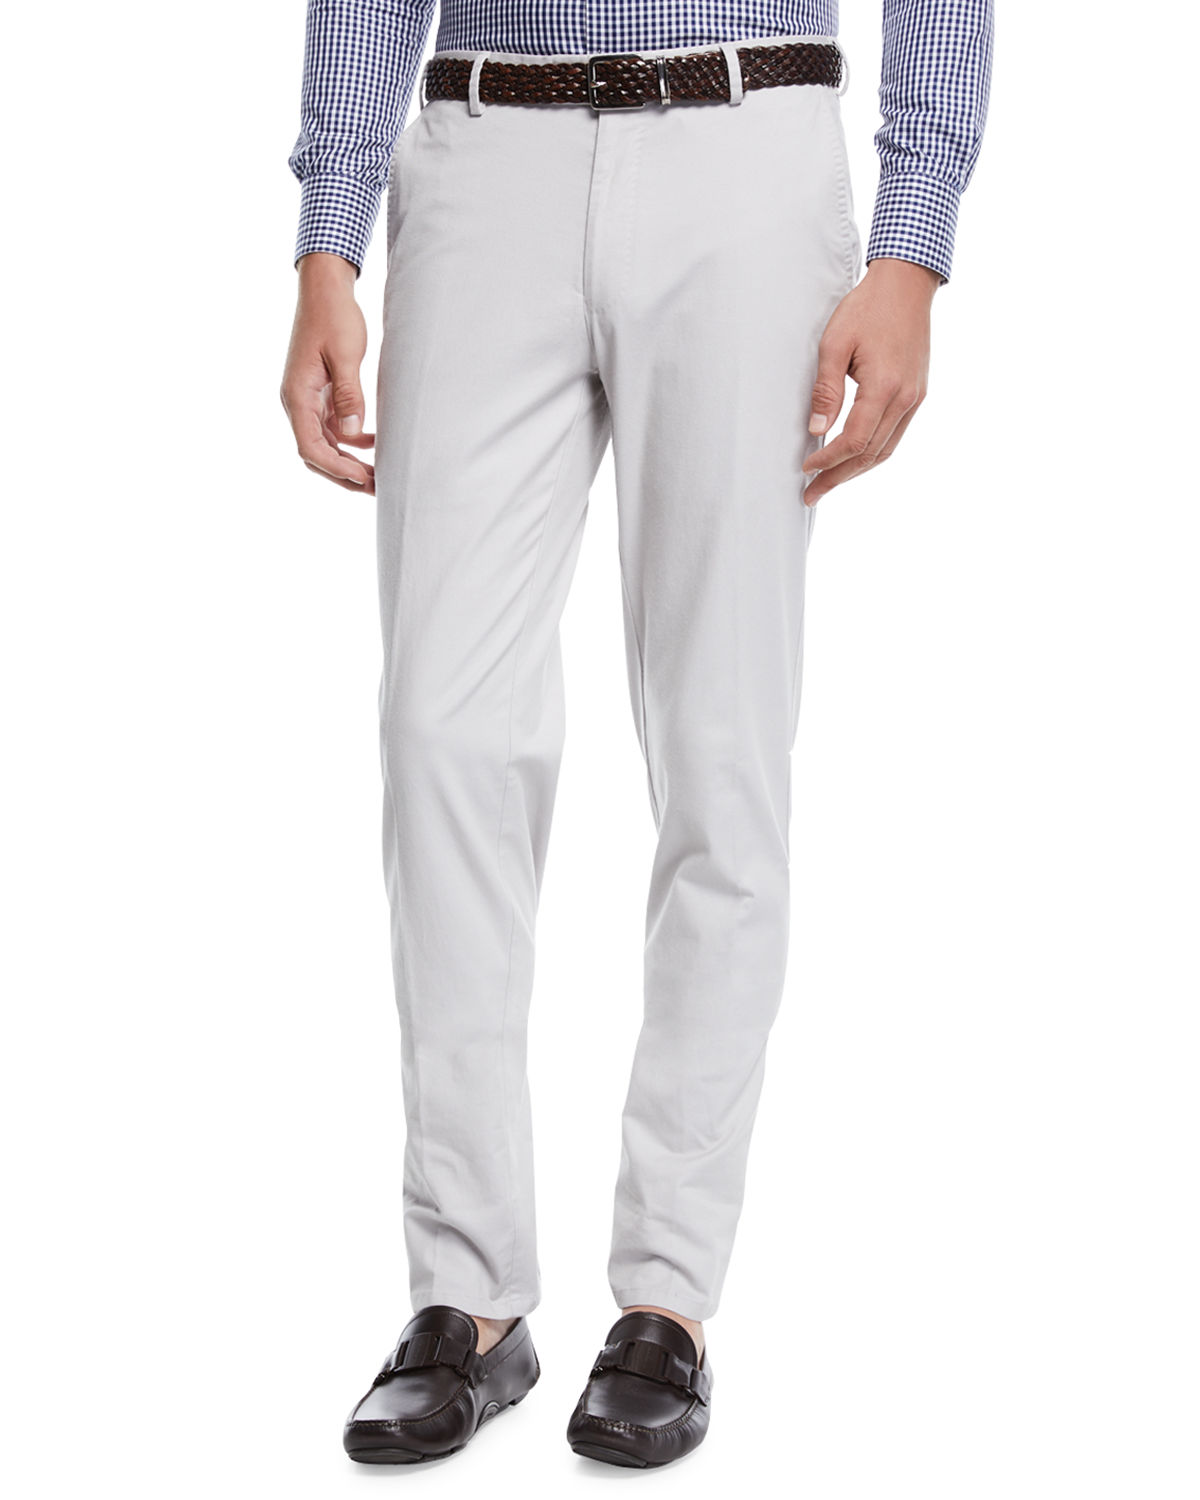 Peter Millar Pants Men's Soft Touch Twill Trousers